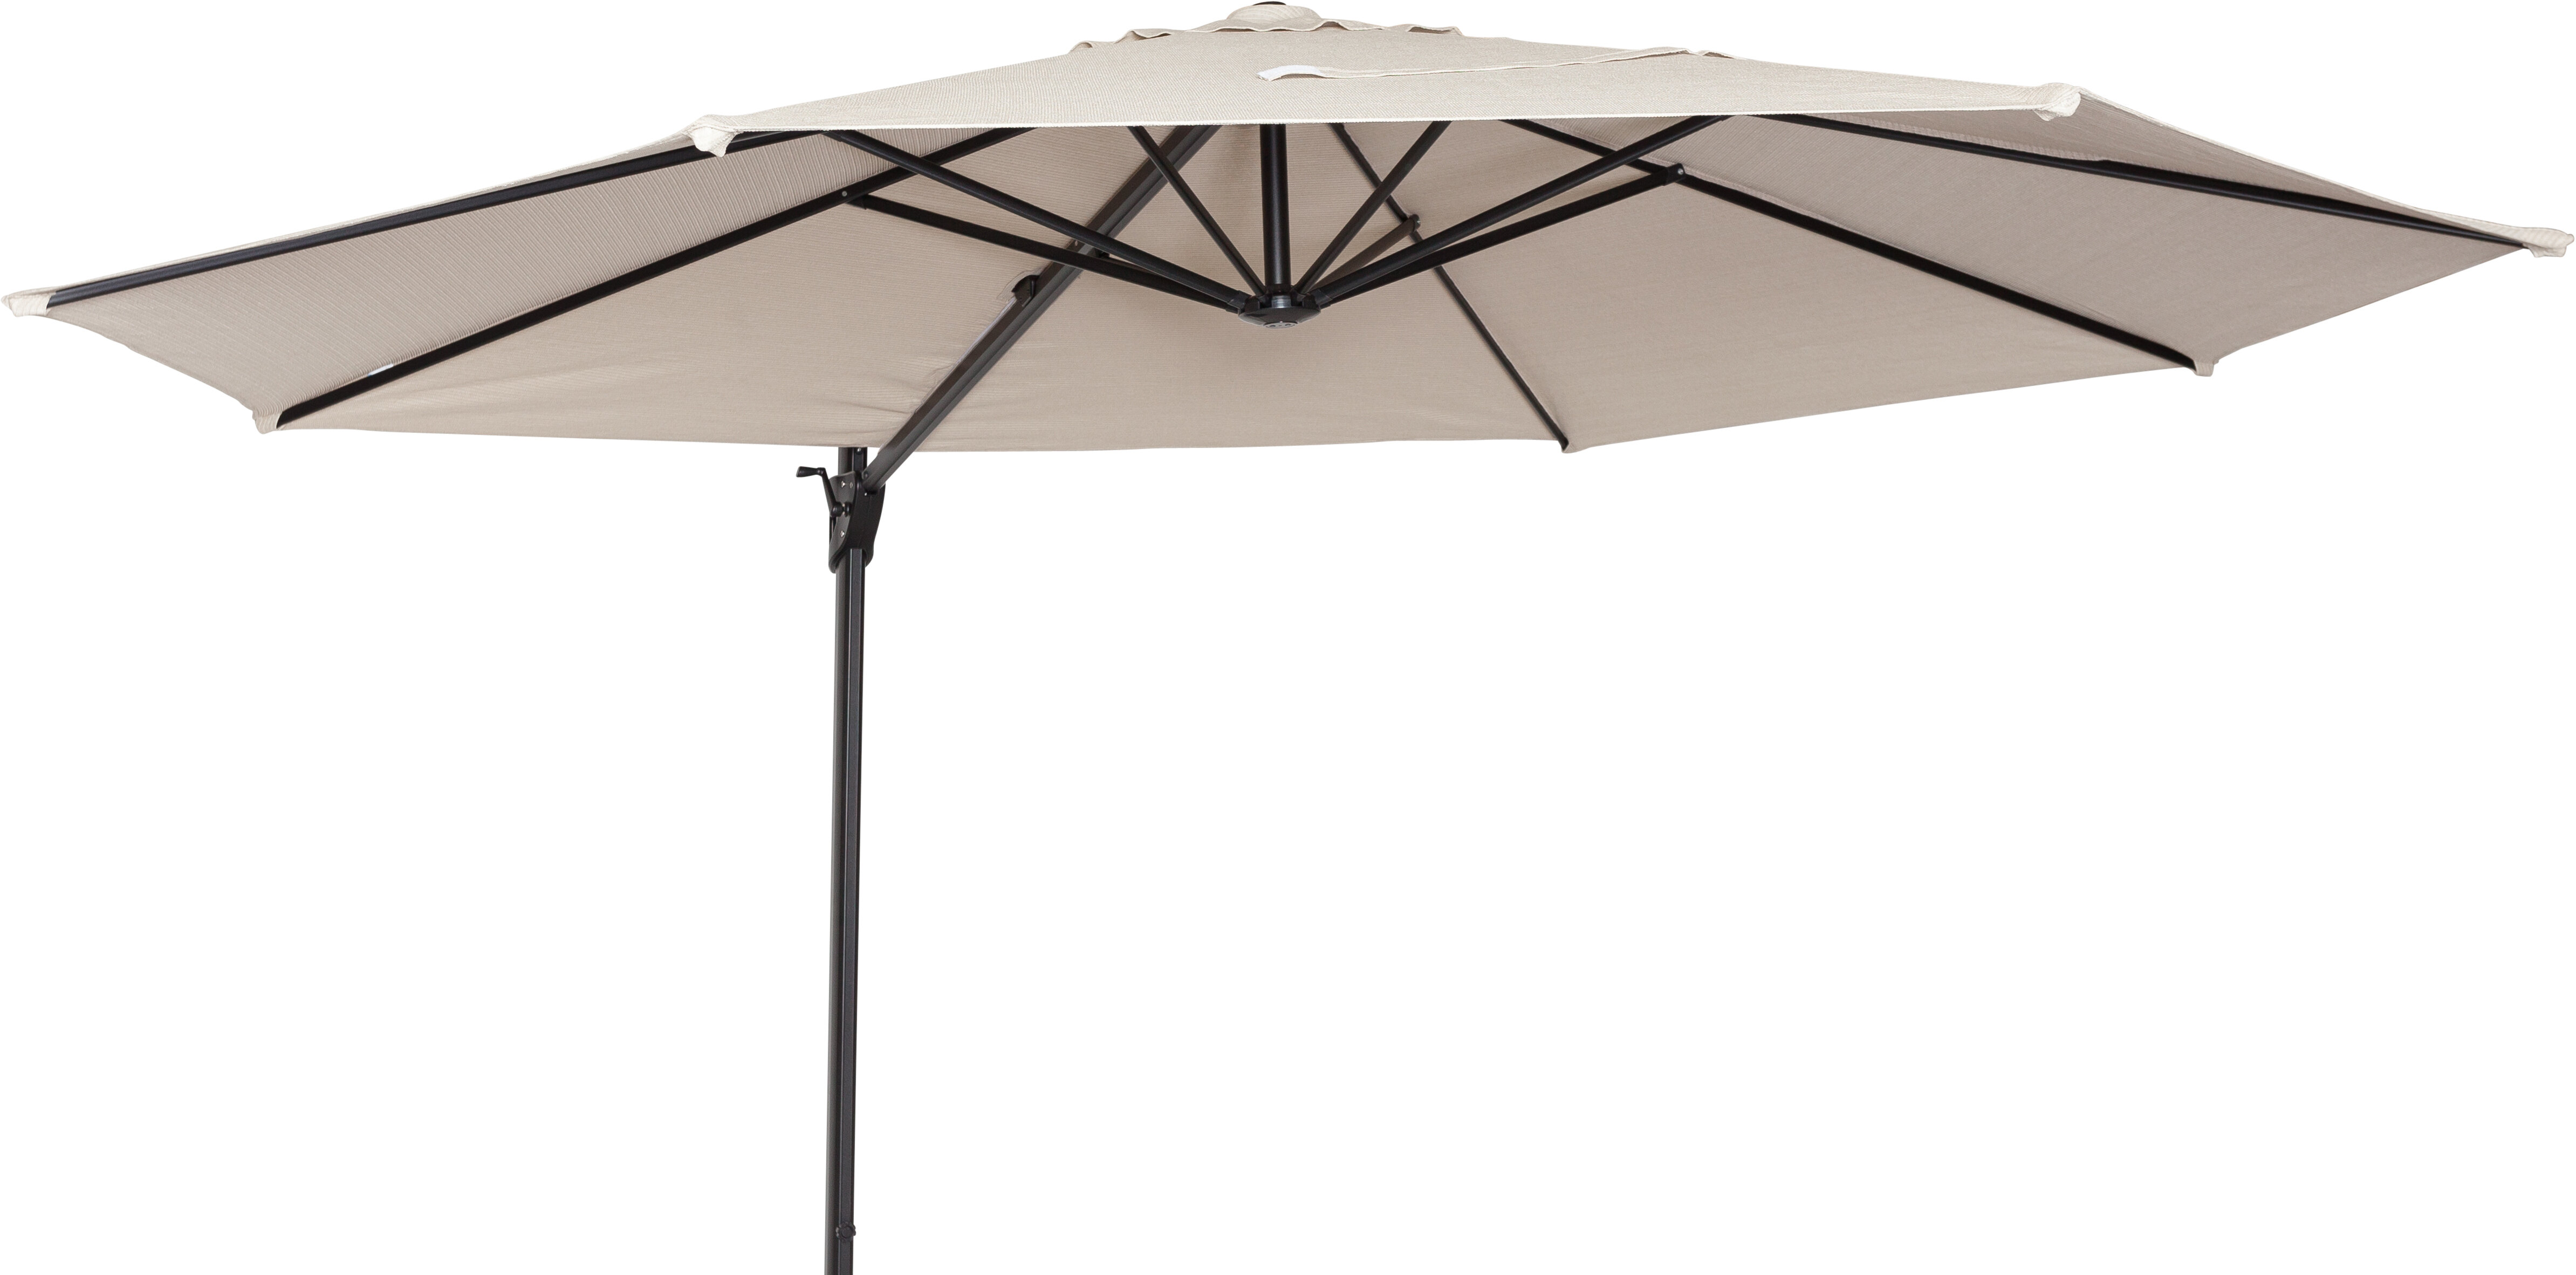 caravan replacement of ft st patio international umbrella best kitts ribs free canopy